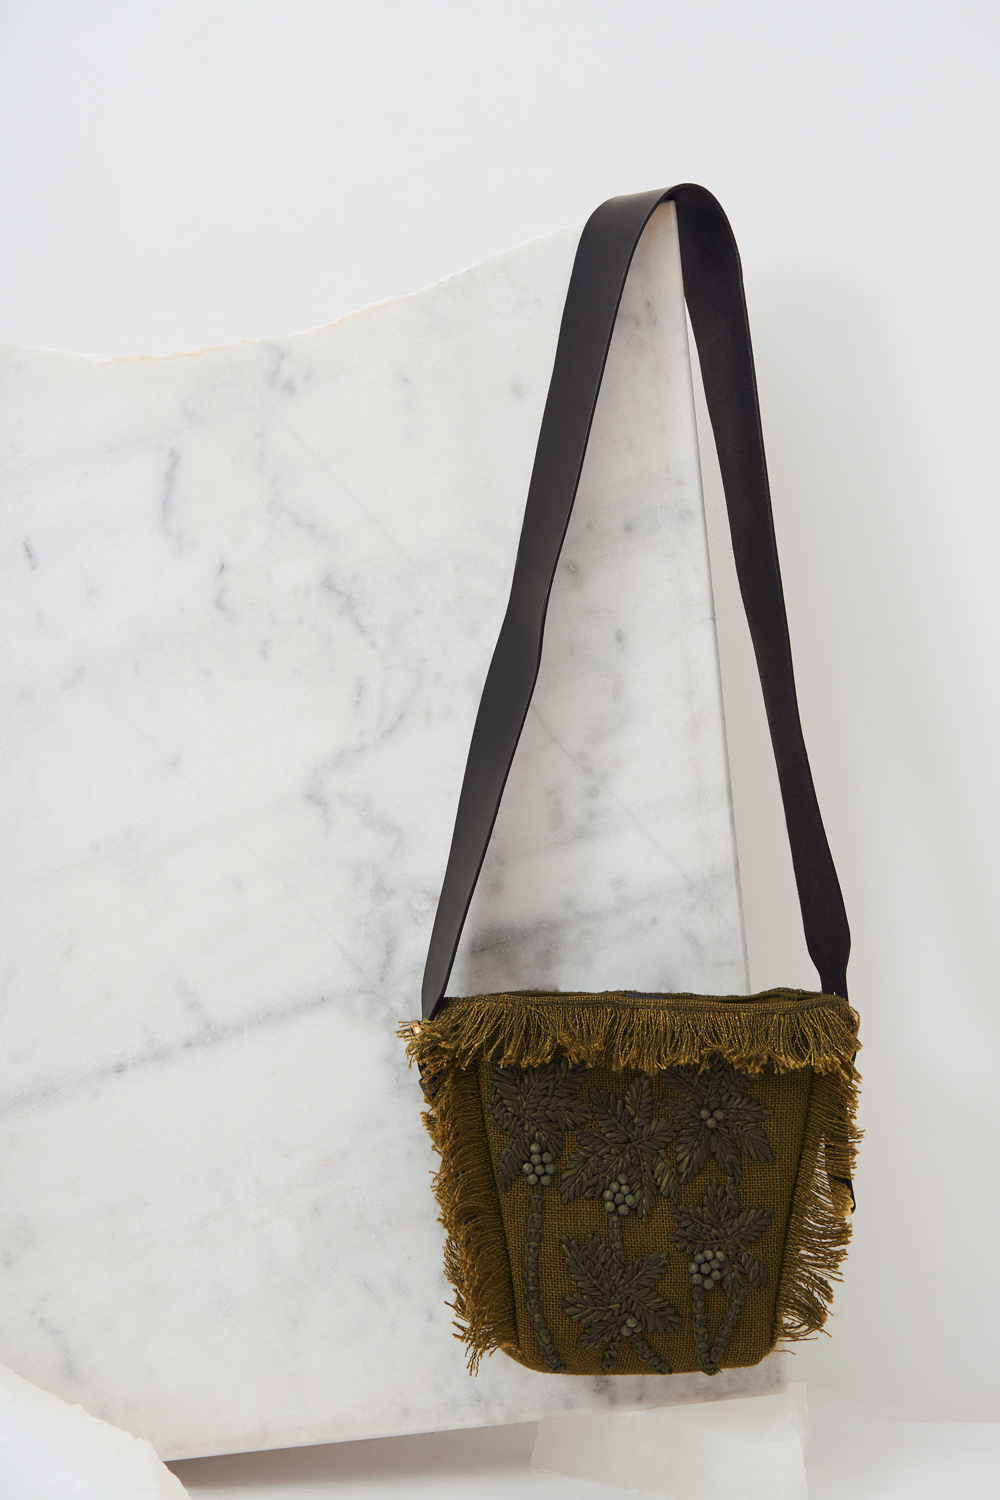 Petit sac raphia Barry - Kaki - Antik Batik (photo)